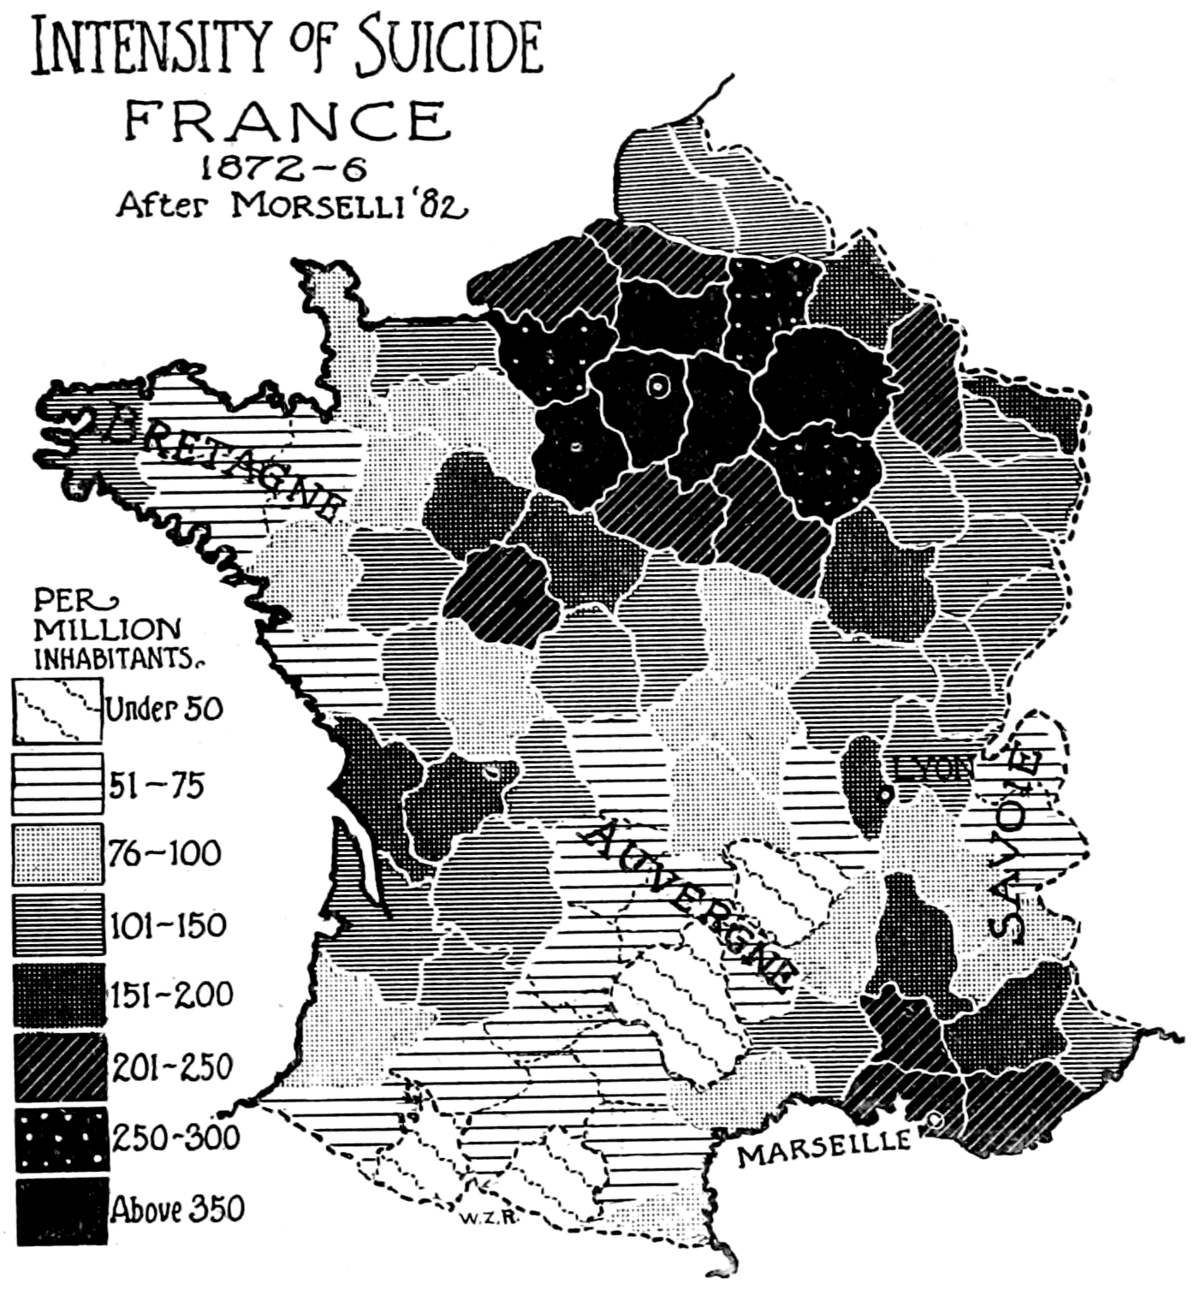 suicide in france wikipedia